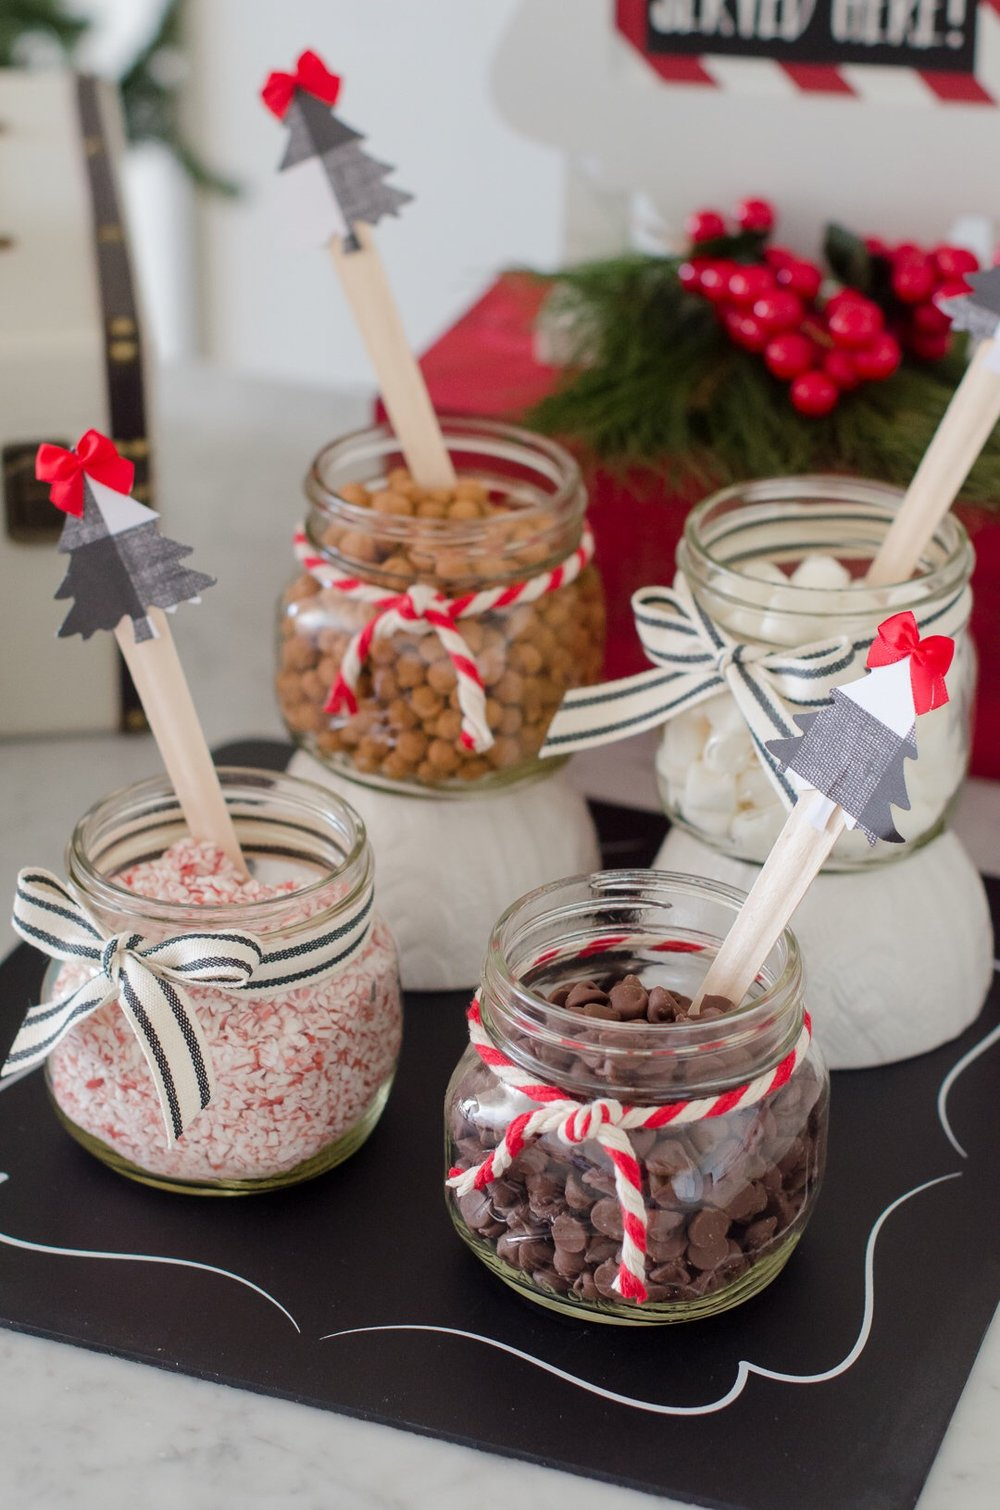 Don't forget the toppings to create a beautiful hot cocoa station. Serve them in decorated mason jars with wooden spoons decorated with paper trees on top. See more holiday party inspiration from Austin based party stylist Mint Event Design at www.minteventdesign.com #holidayparty #holidays #partyideas #christmasparty #holidaypartyideas #hotcocoabar #hotcocoa